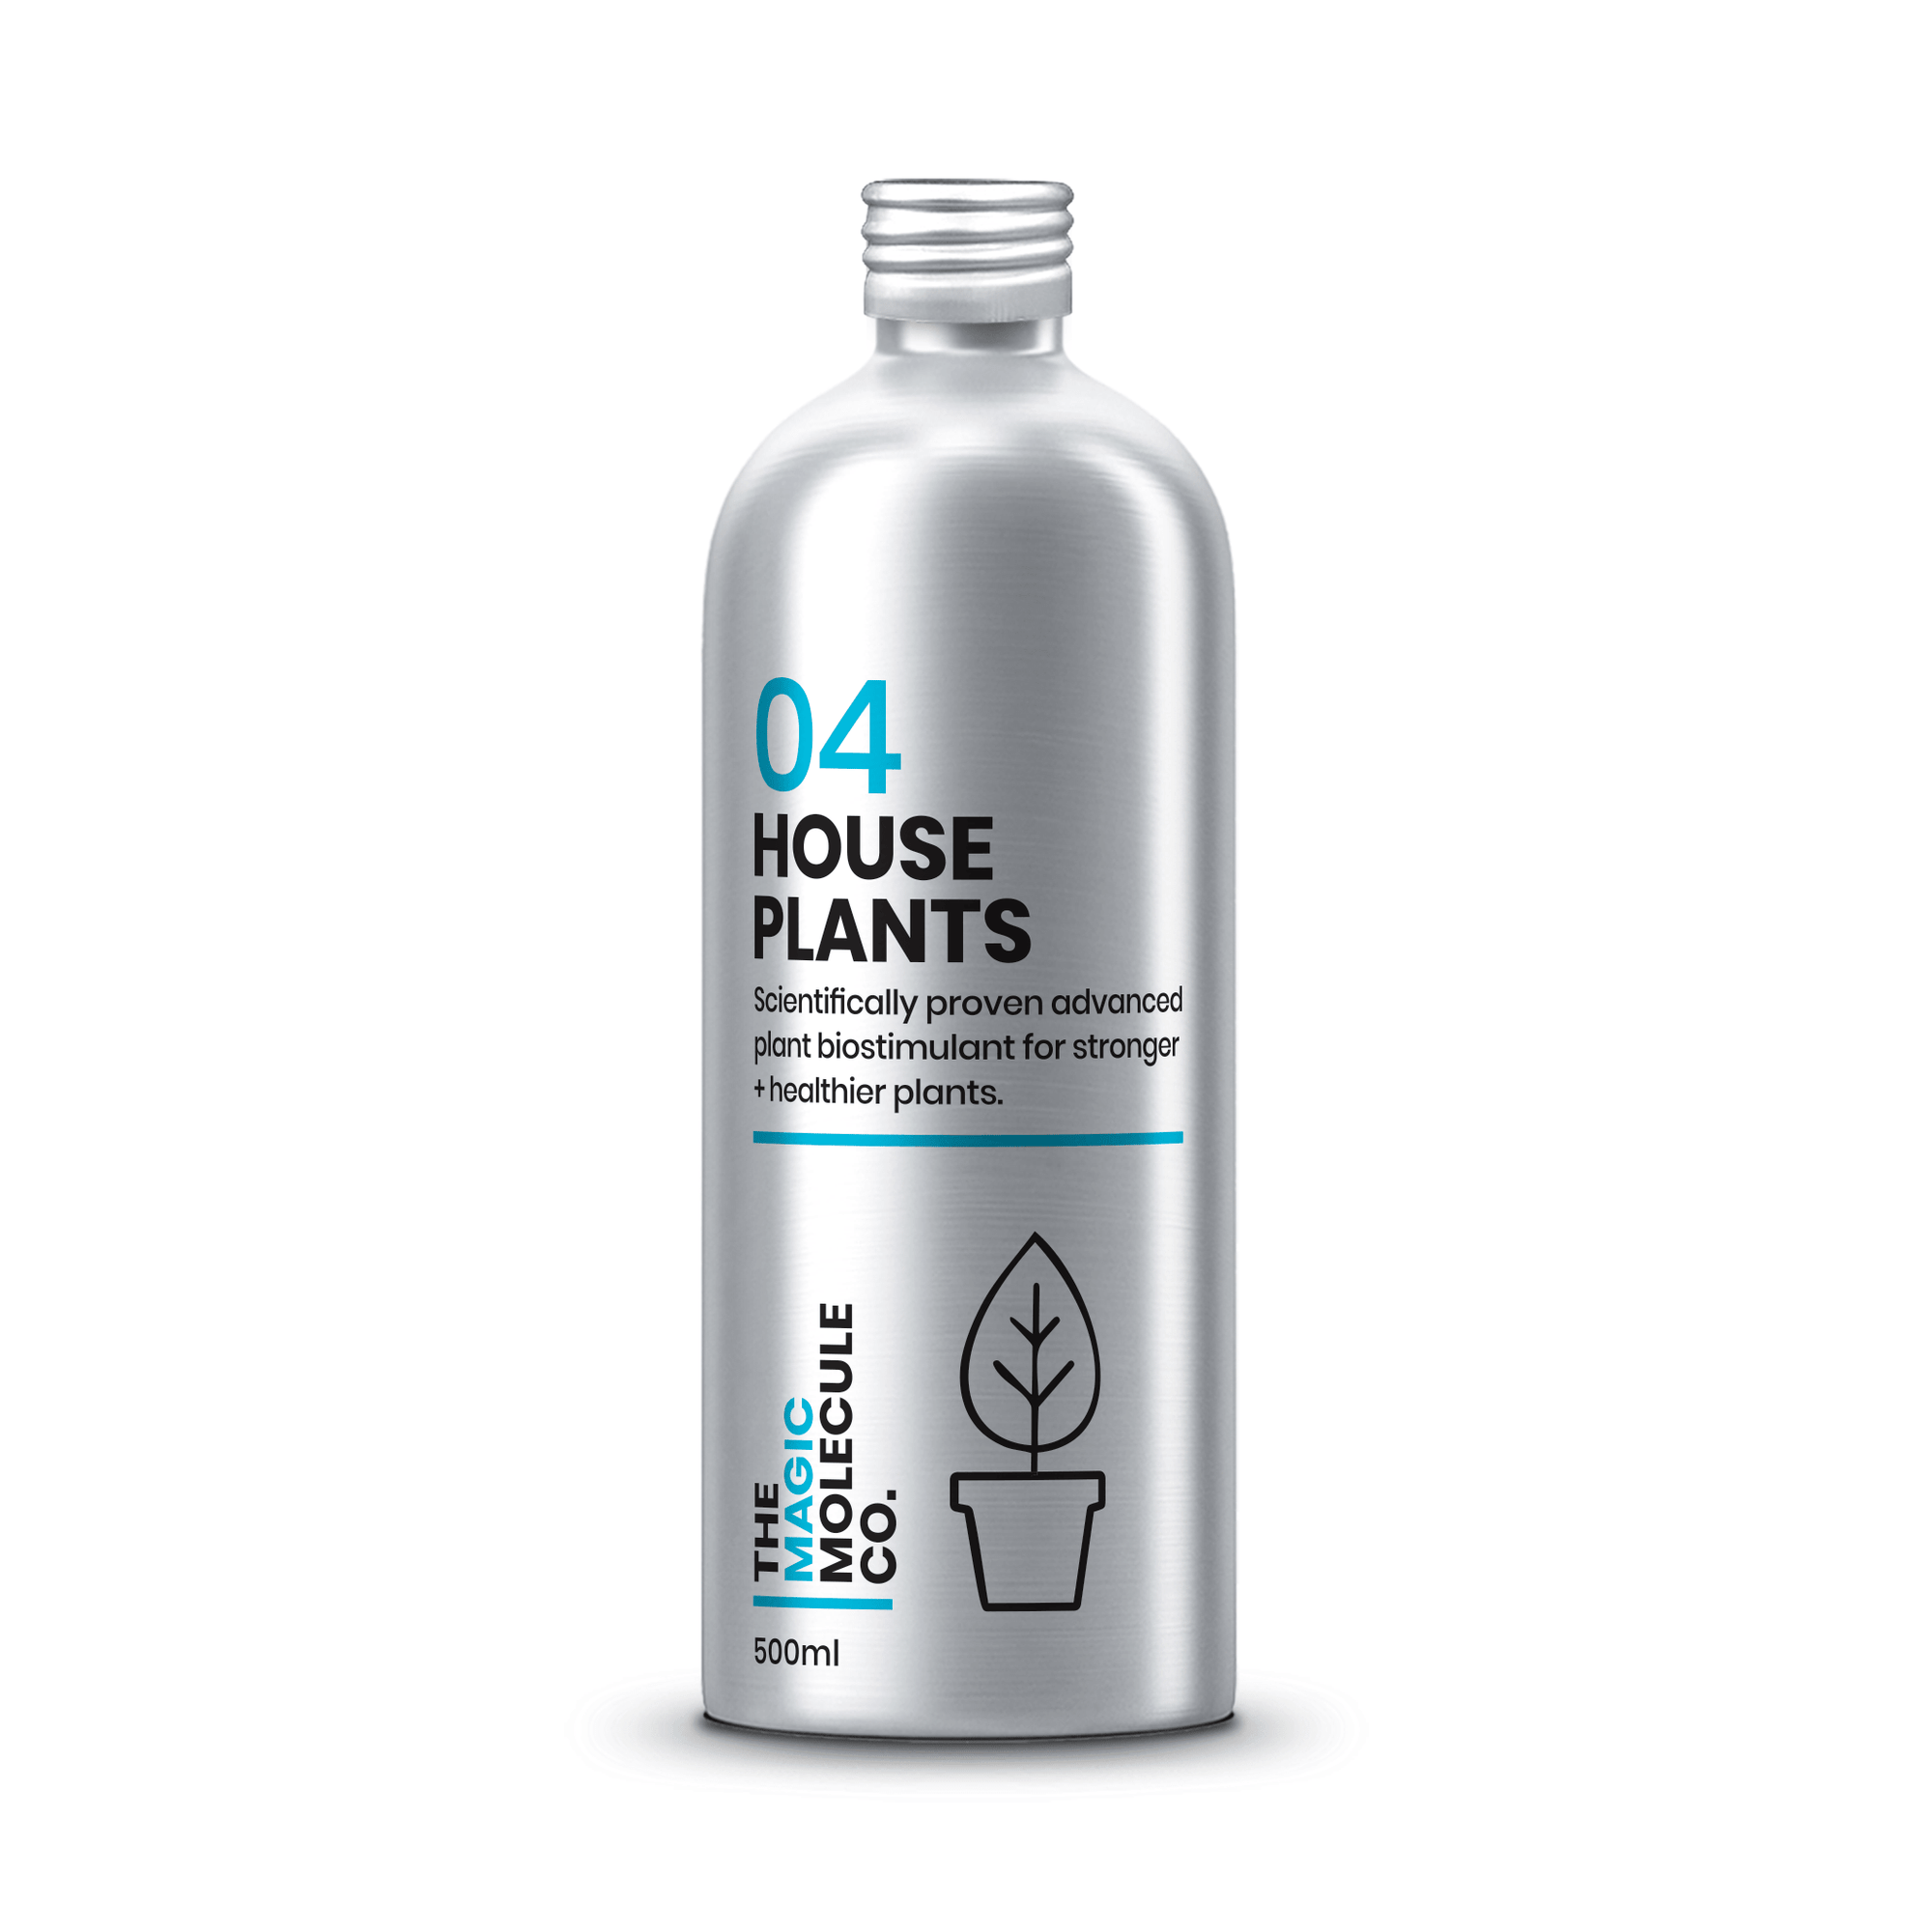 04 Houseplants Biostimulant - 500ml